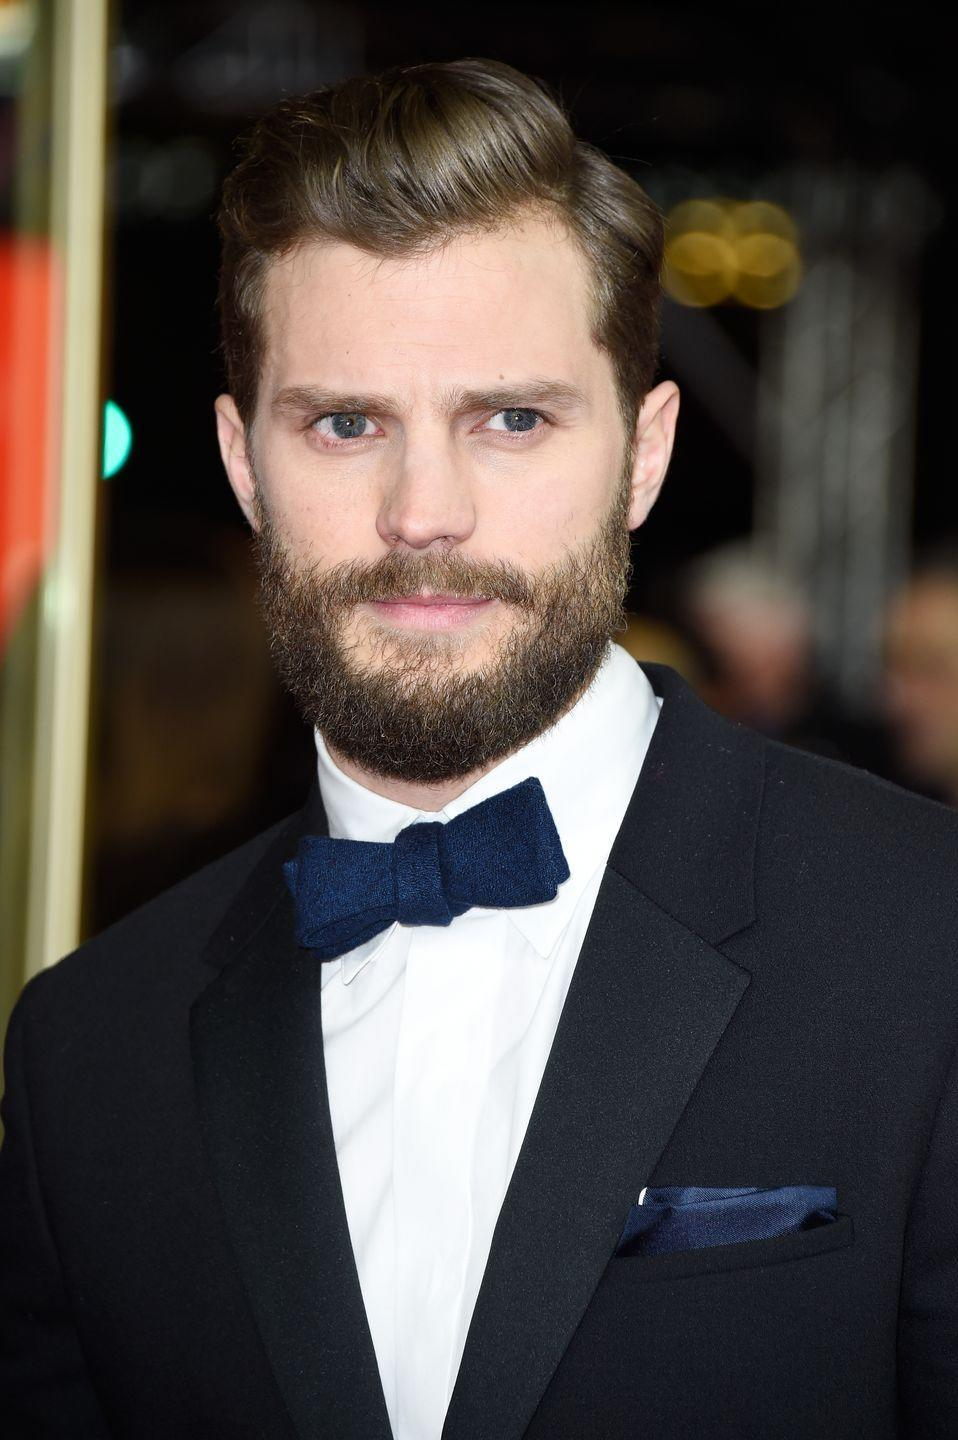 <p> We'll just say it: Dornan's full lumberjack beard is 50 shades of manly and without it, well, you'll see...</p>